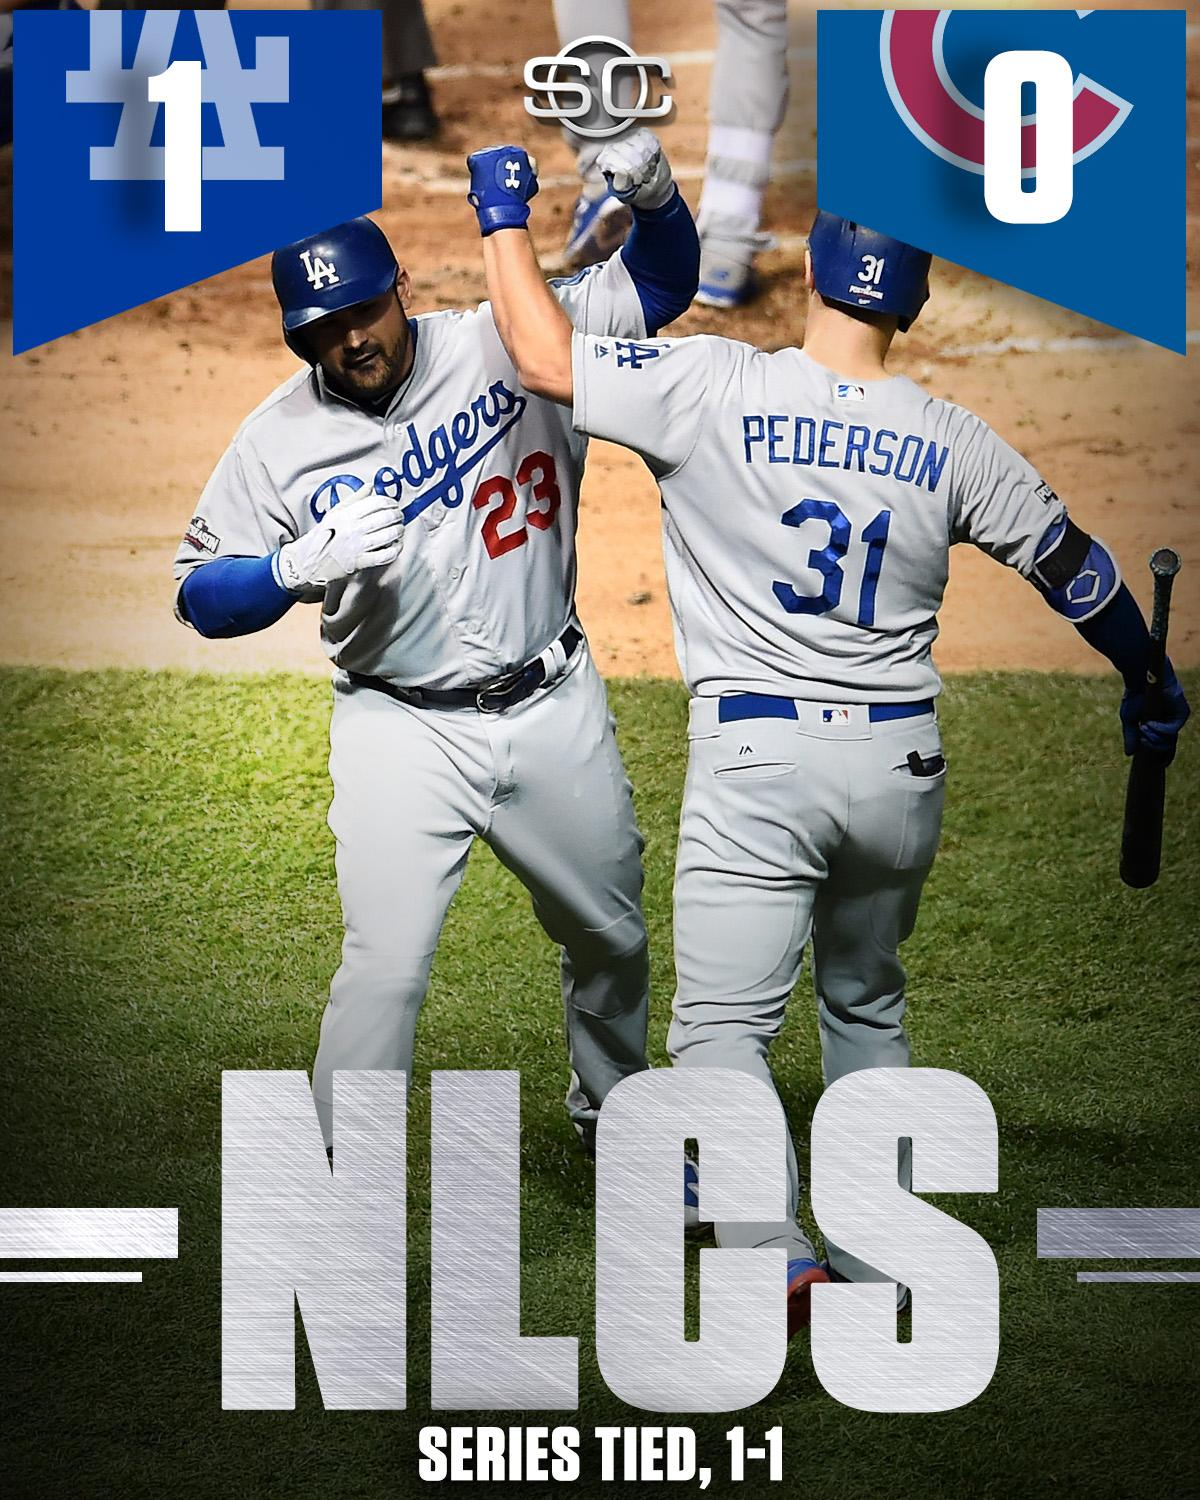 DODGERS TAKE GAME 2!  LA evens the series with Cubs, handing Chicago its first postseason shutout since 2003. https://t.co/6xAJPvlLyG